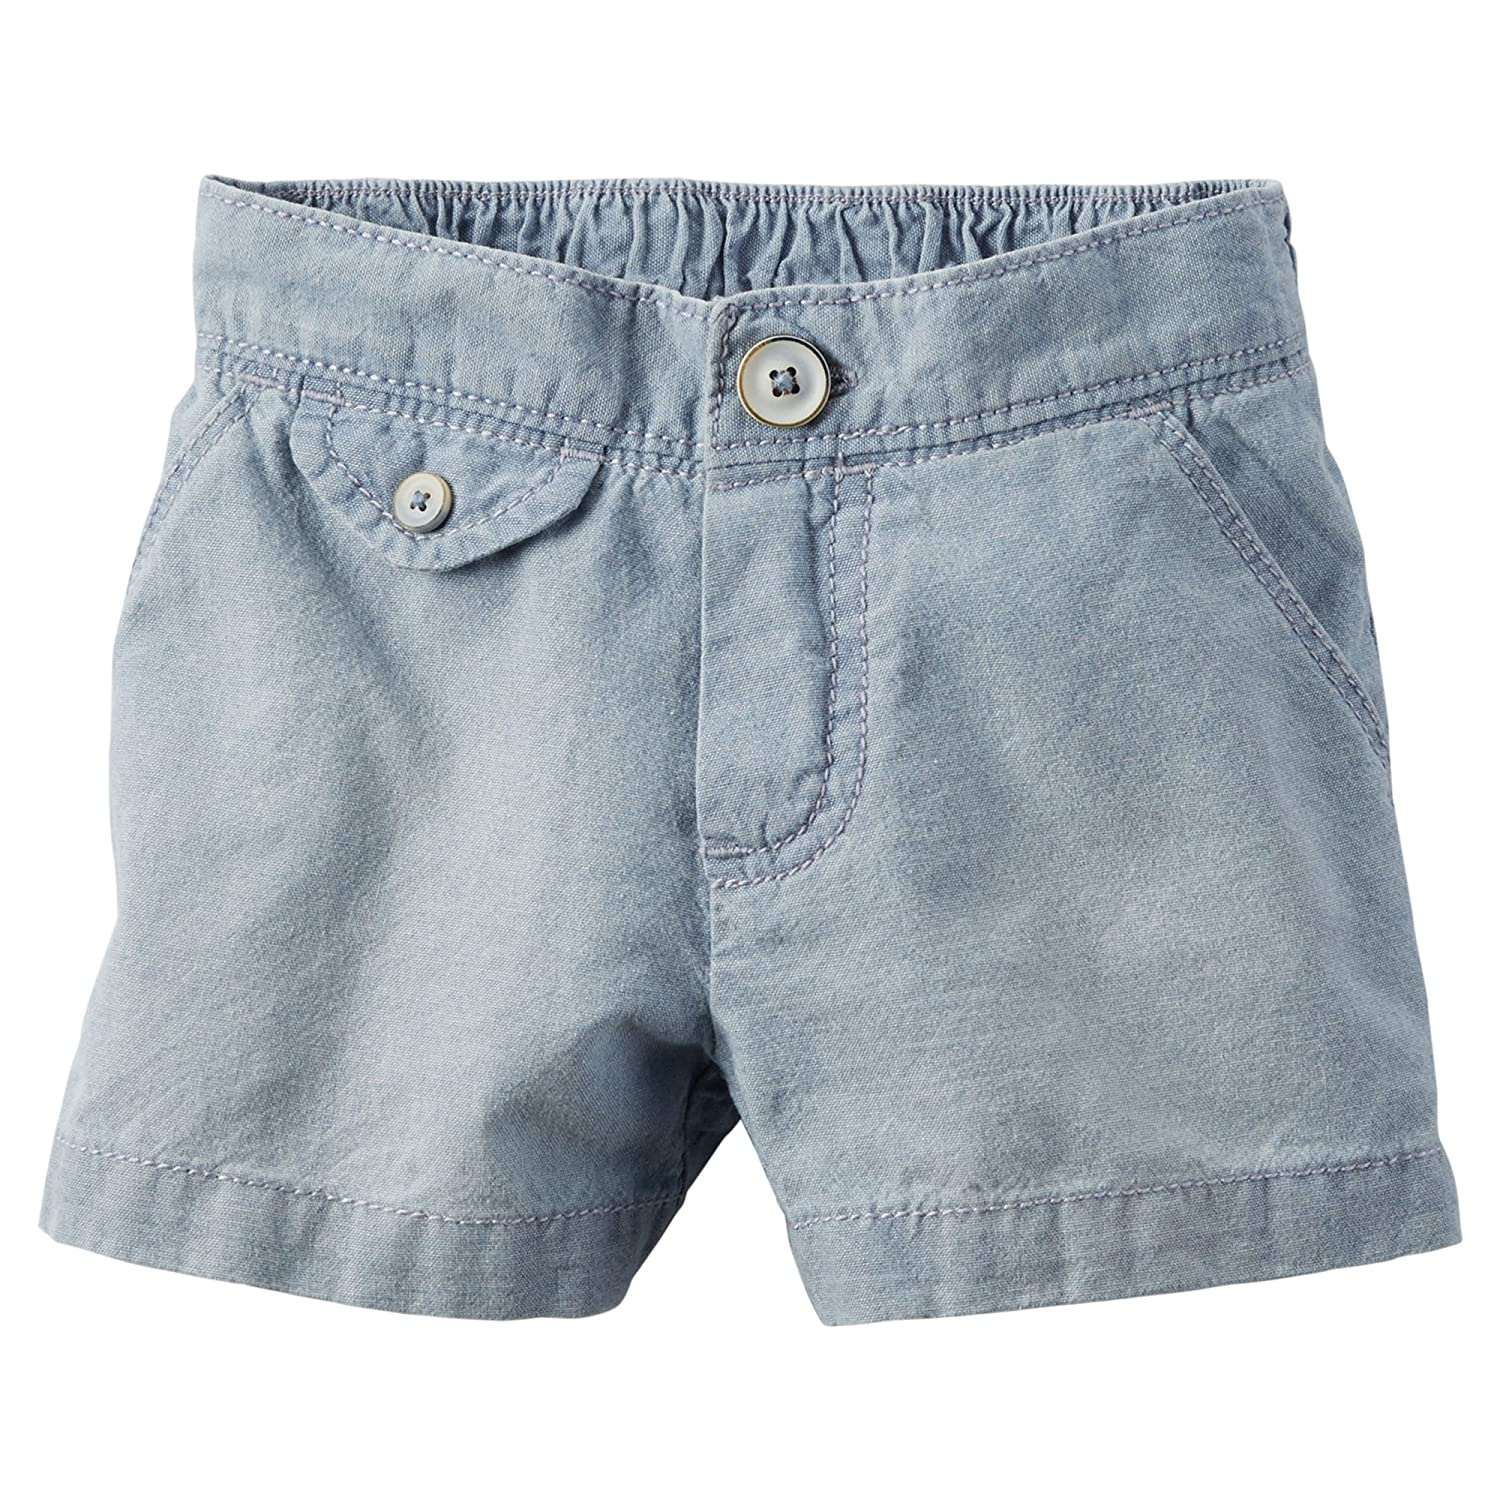 Carters Baby Girls Flap-Pocket Chambray Shorts 24 Months